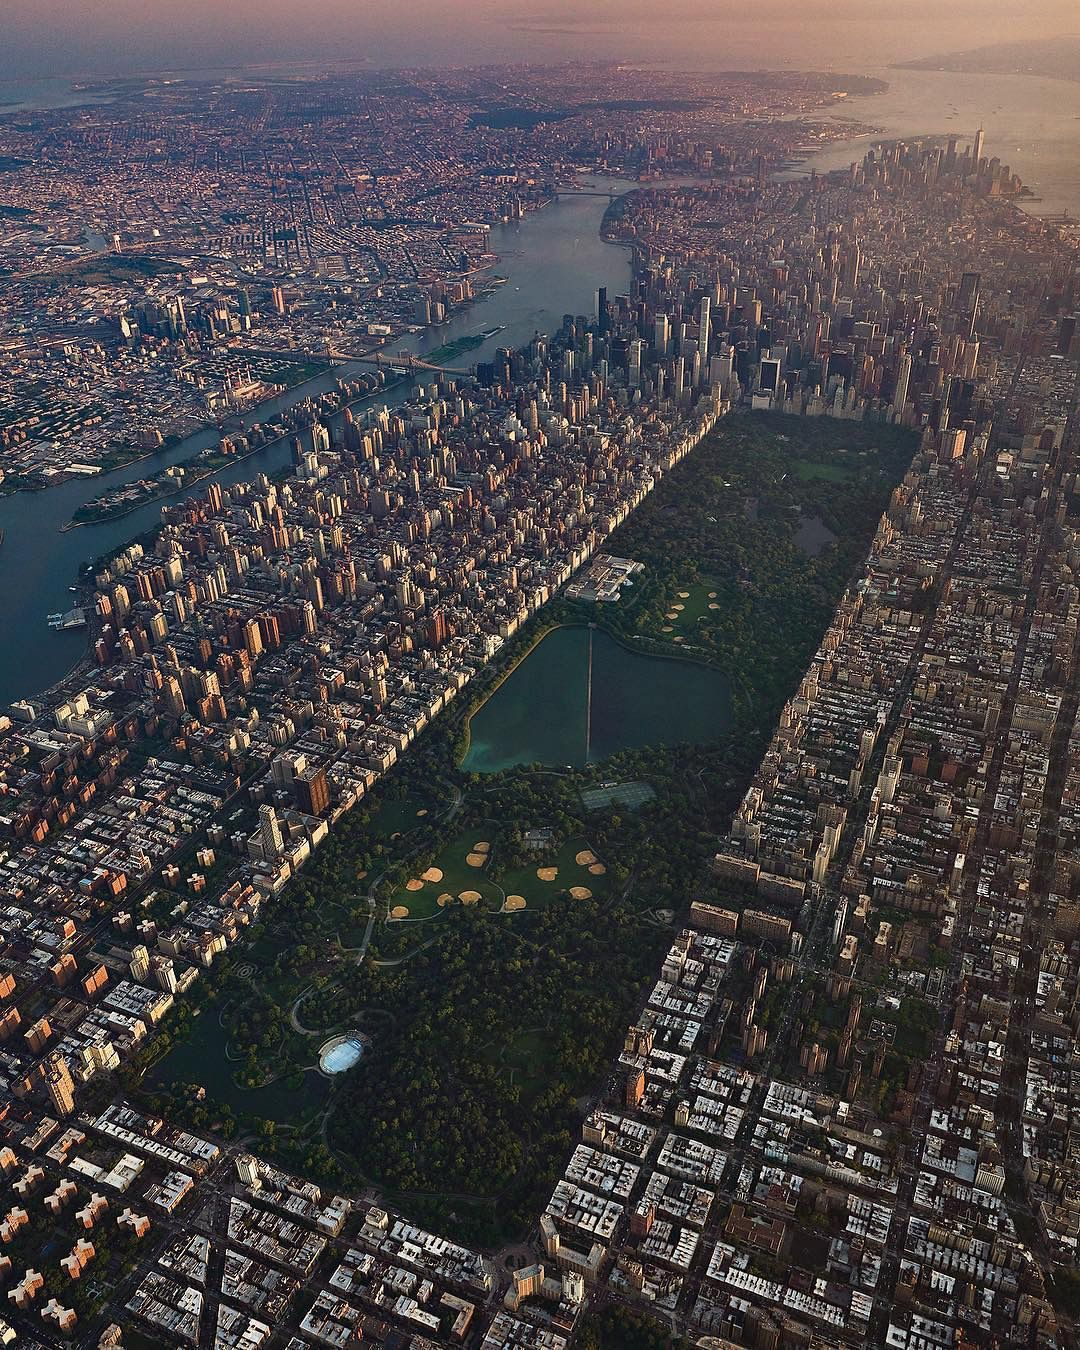 Tumblr Pdq7tjgmav1qeafwfo1 1280 Pnj 1080 1350 New York Travel New York Central City From Above